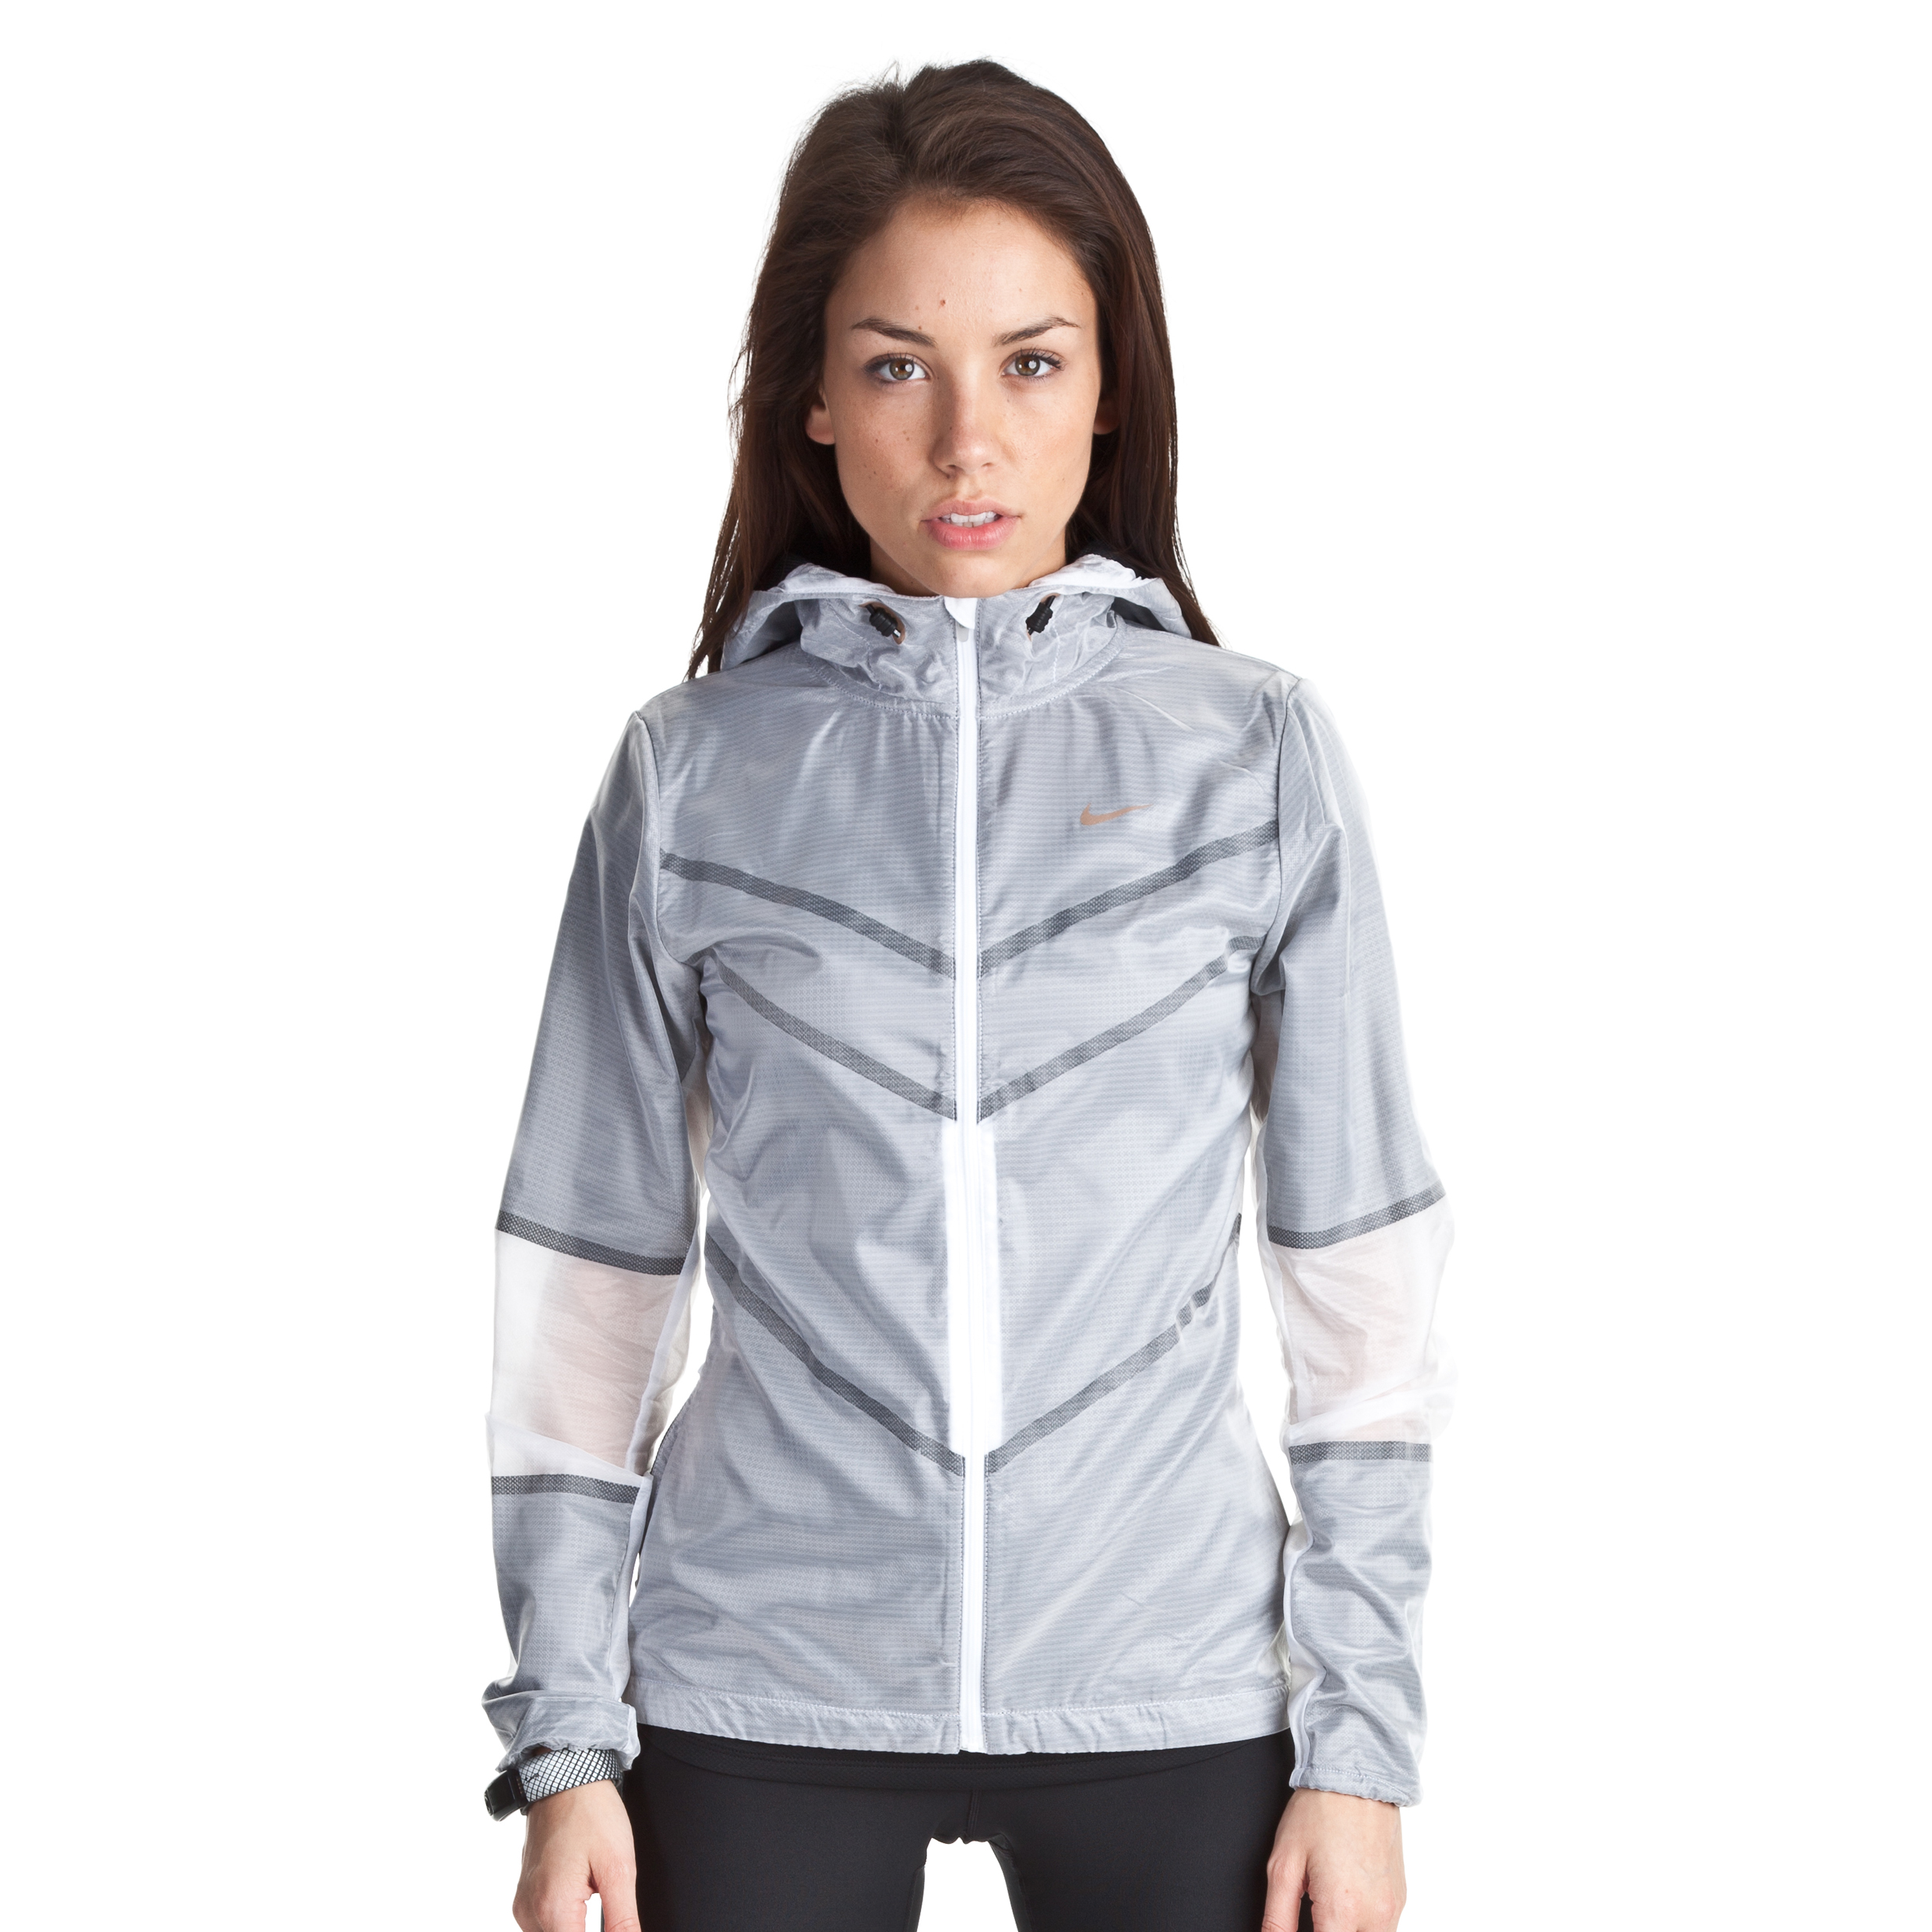 Nike Cyclone Jacket - White/Black/Metallic Bronze - Womens